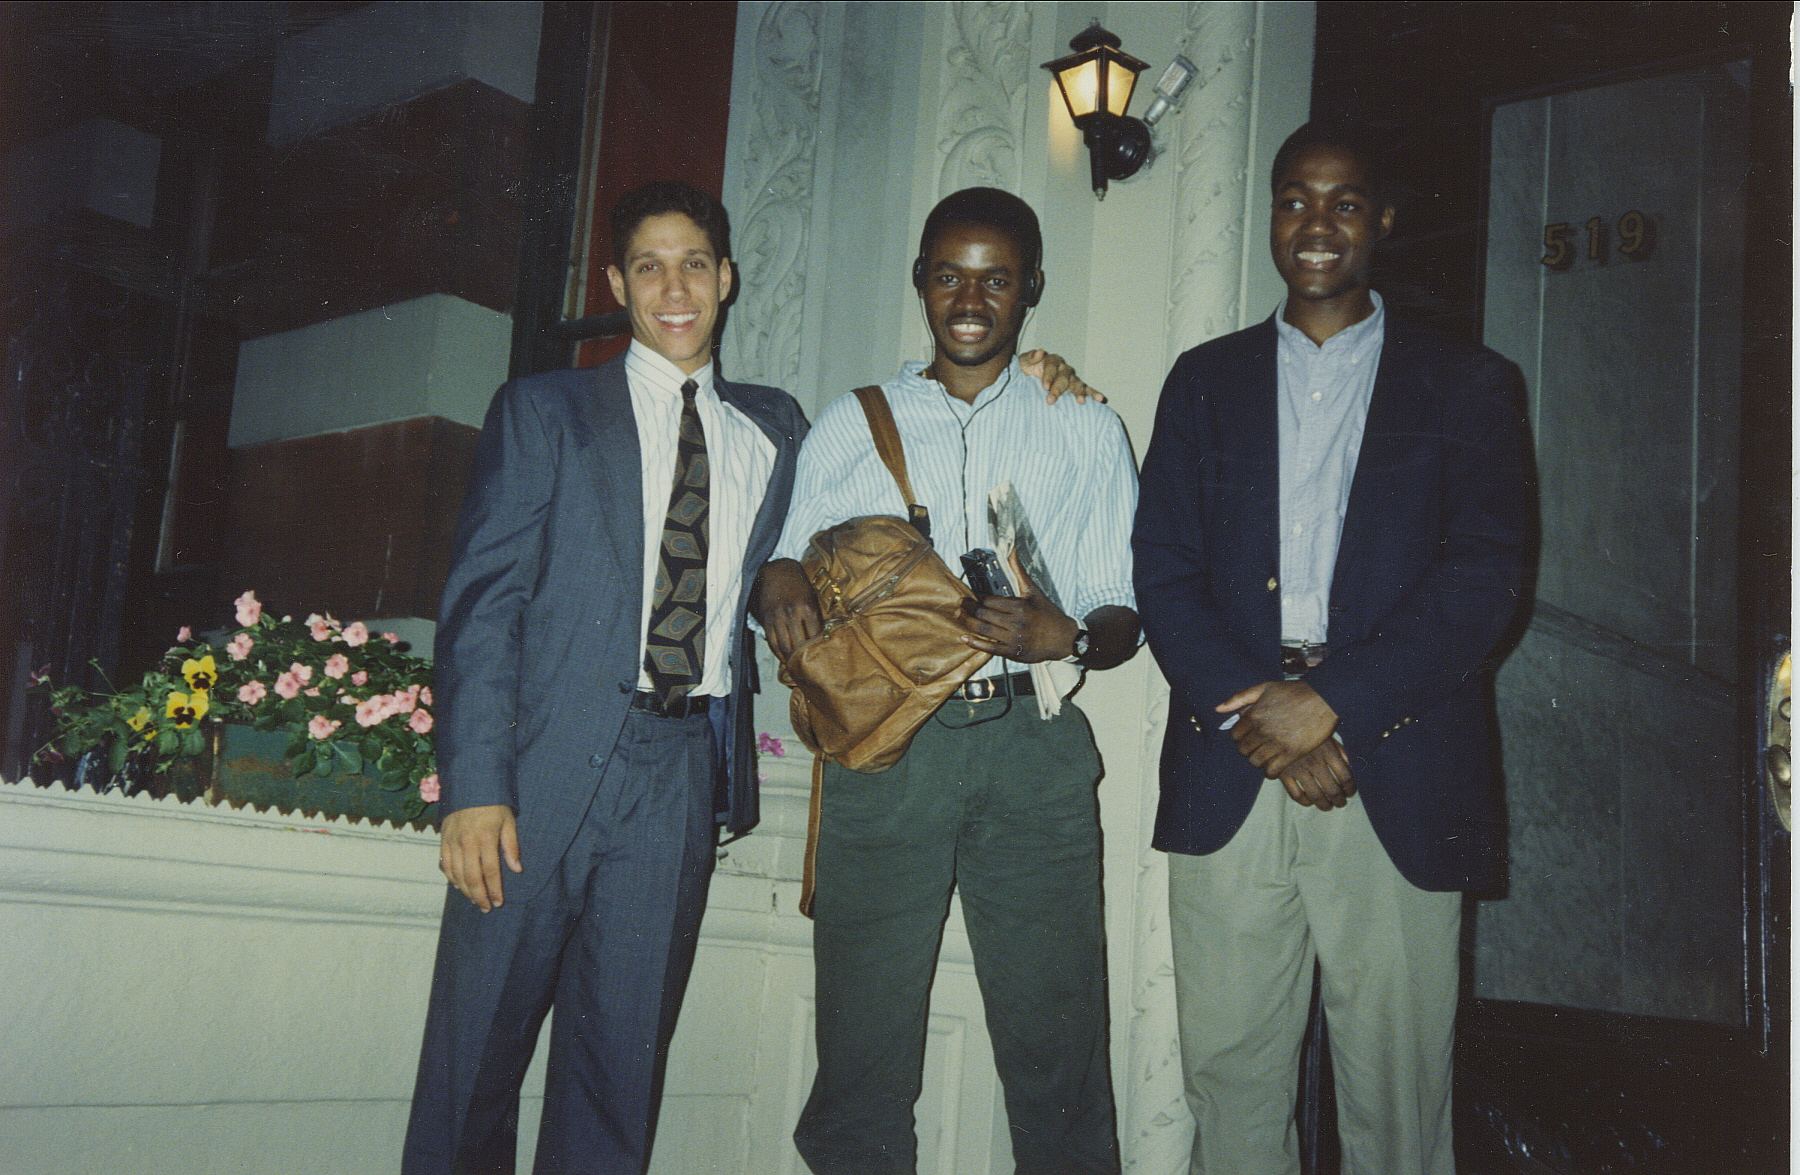 The building that I grew up in was on 121st between Amsterdam and Broadway. In this photo circa 1990, I'm sandwiched by Rhahime Bell and my youngest brother,  Nana, who would die after the 1995 earthquake in Kobe, Japan .